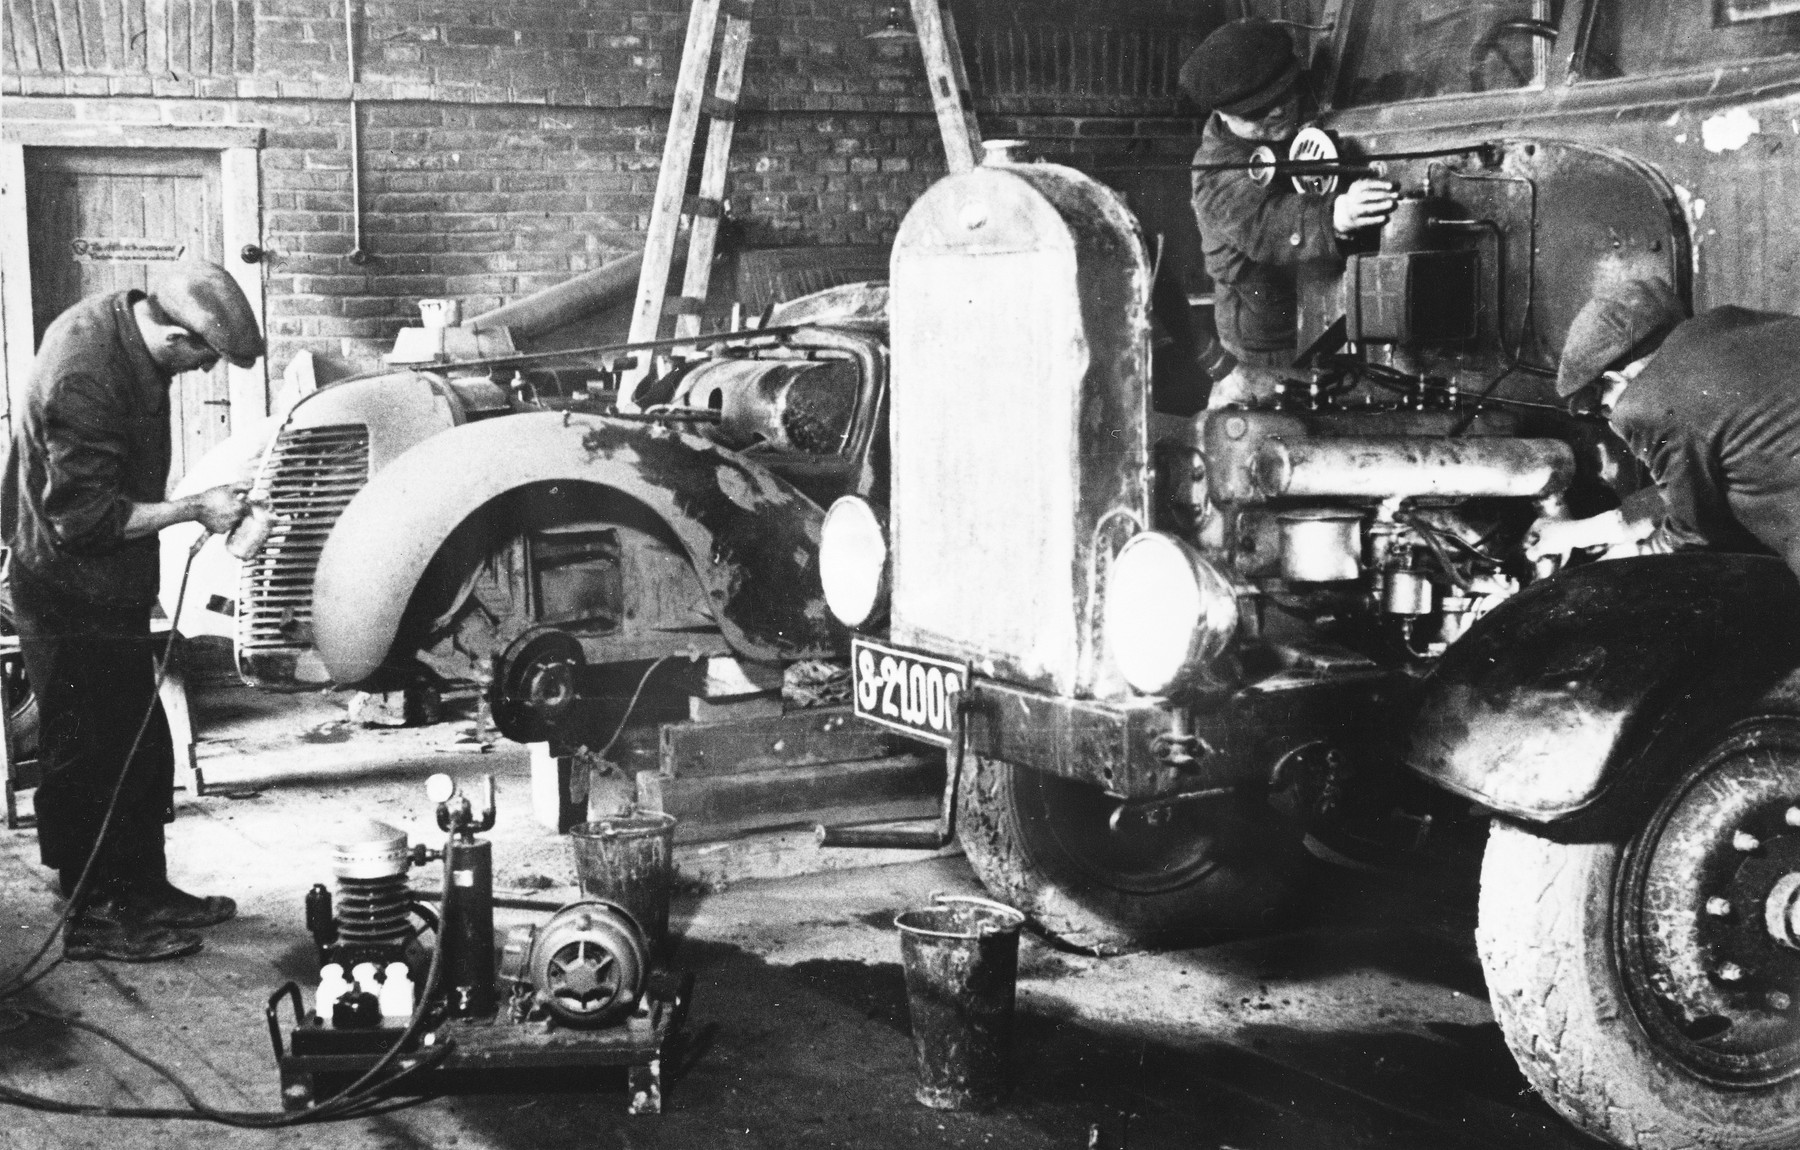 Prisoners repair automobile engines at a Slovak labor camp.